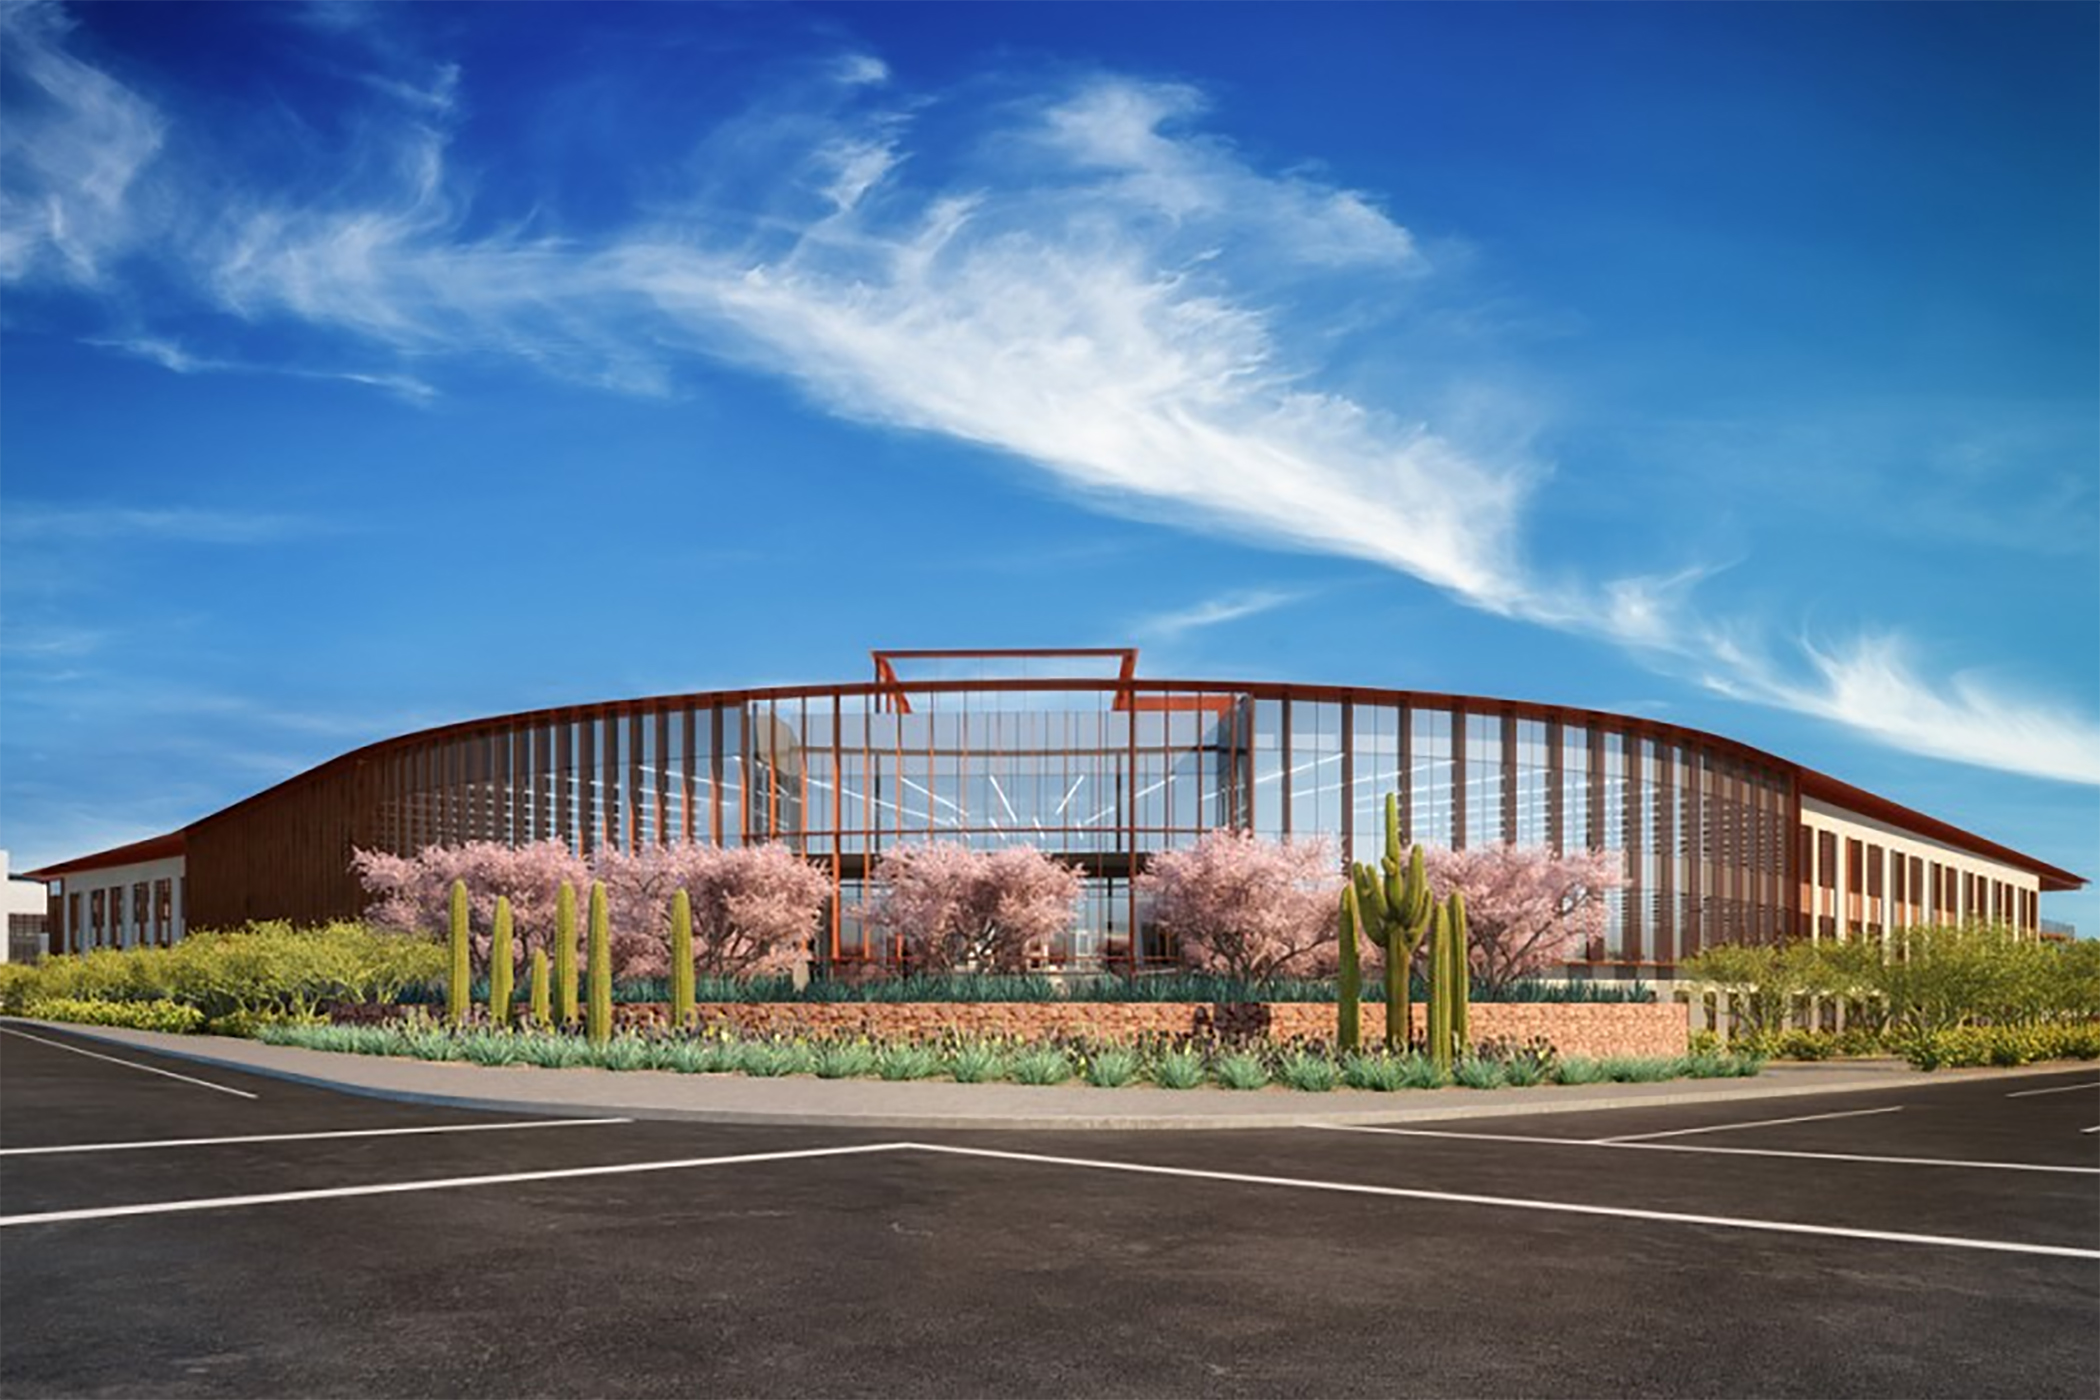 The three-story office building at Scottsdale Entrada is expected to open in third-quarter 2021. (Rendering: Banyan Residential)